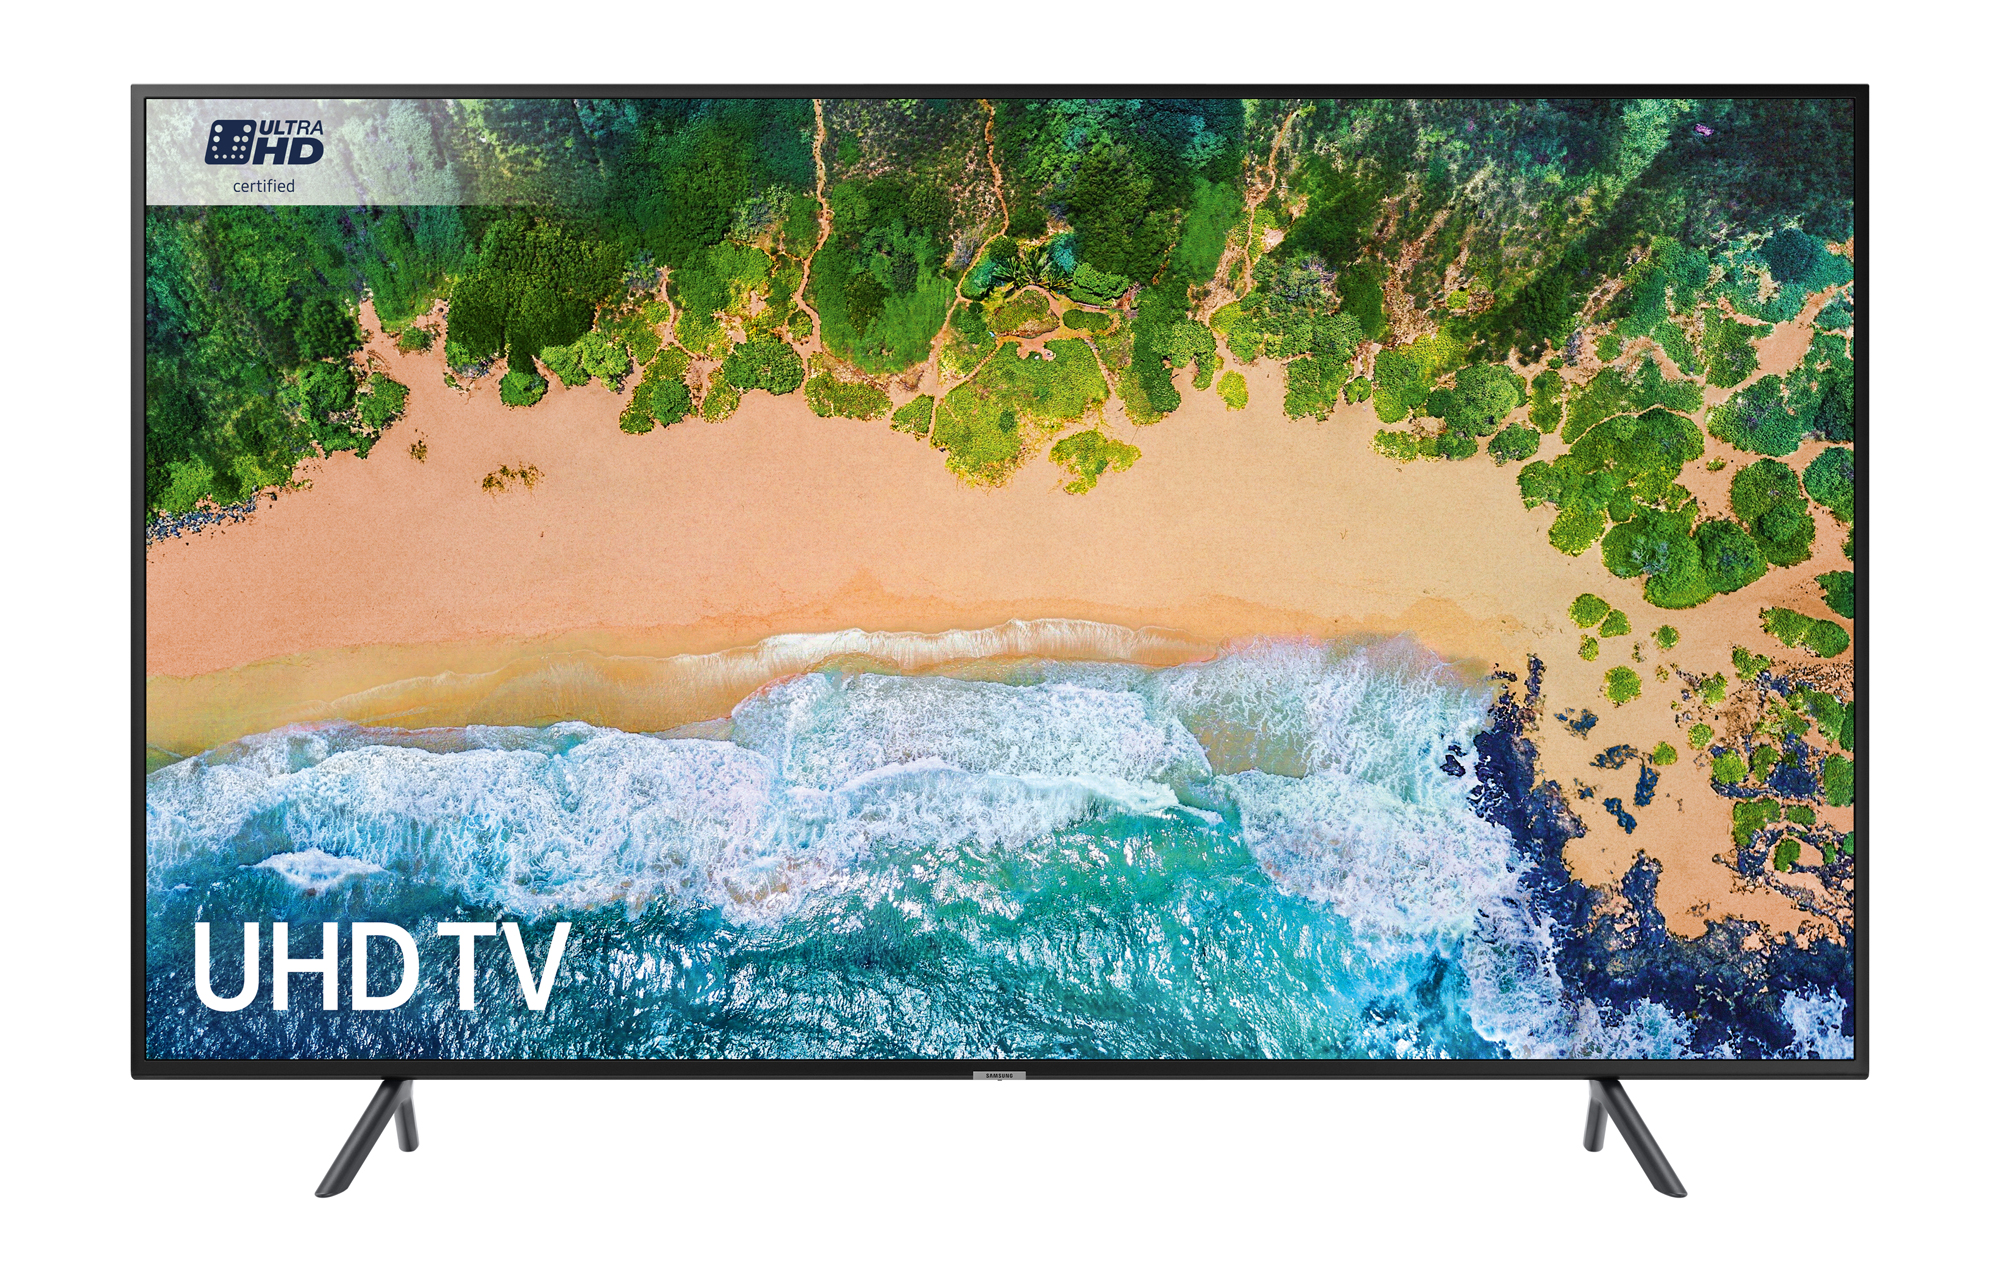 Buy Samsung 40 Inch 40NU7120 4K UHD Smart TV with HDR Televisions